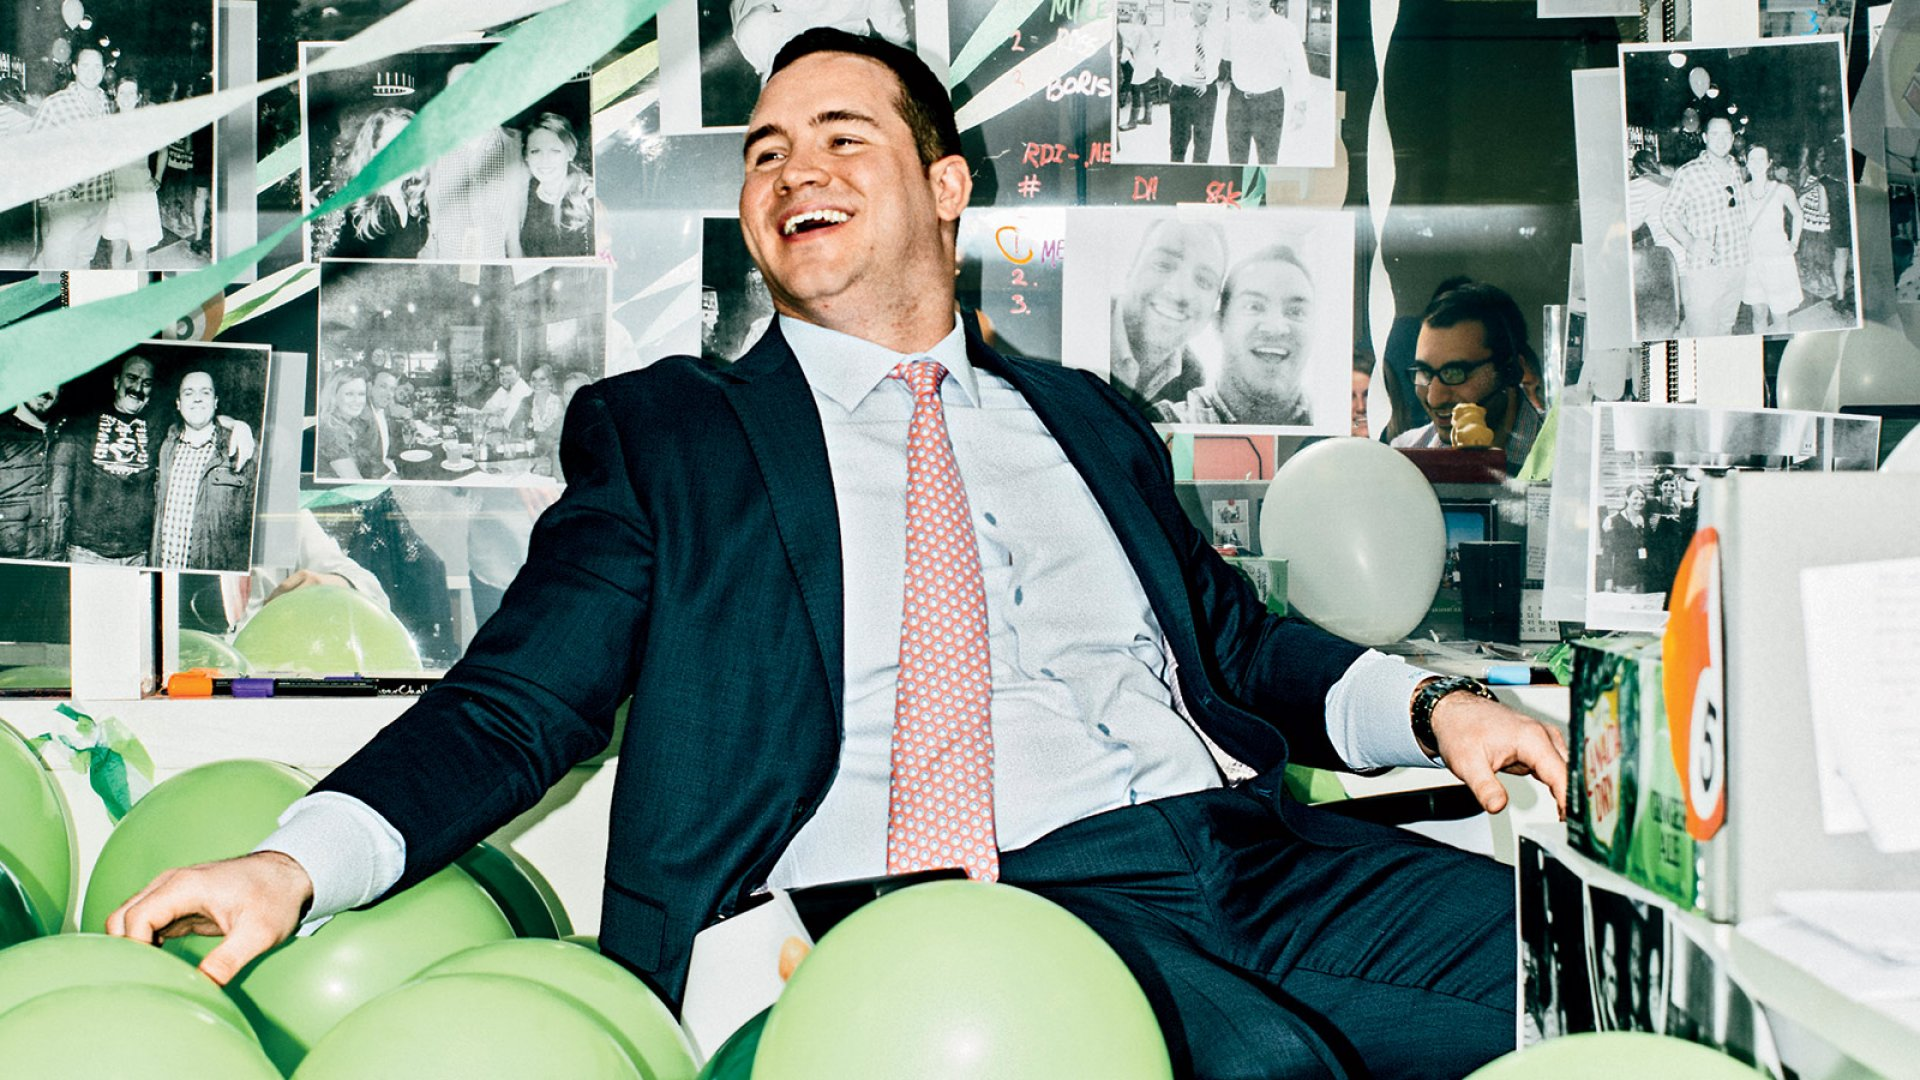 LaSalle Network's technology services team leader, Paul Wallenberg, is up to his hips in balloons to mark the fifth anniversary of his hiring.